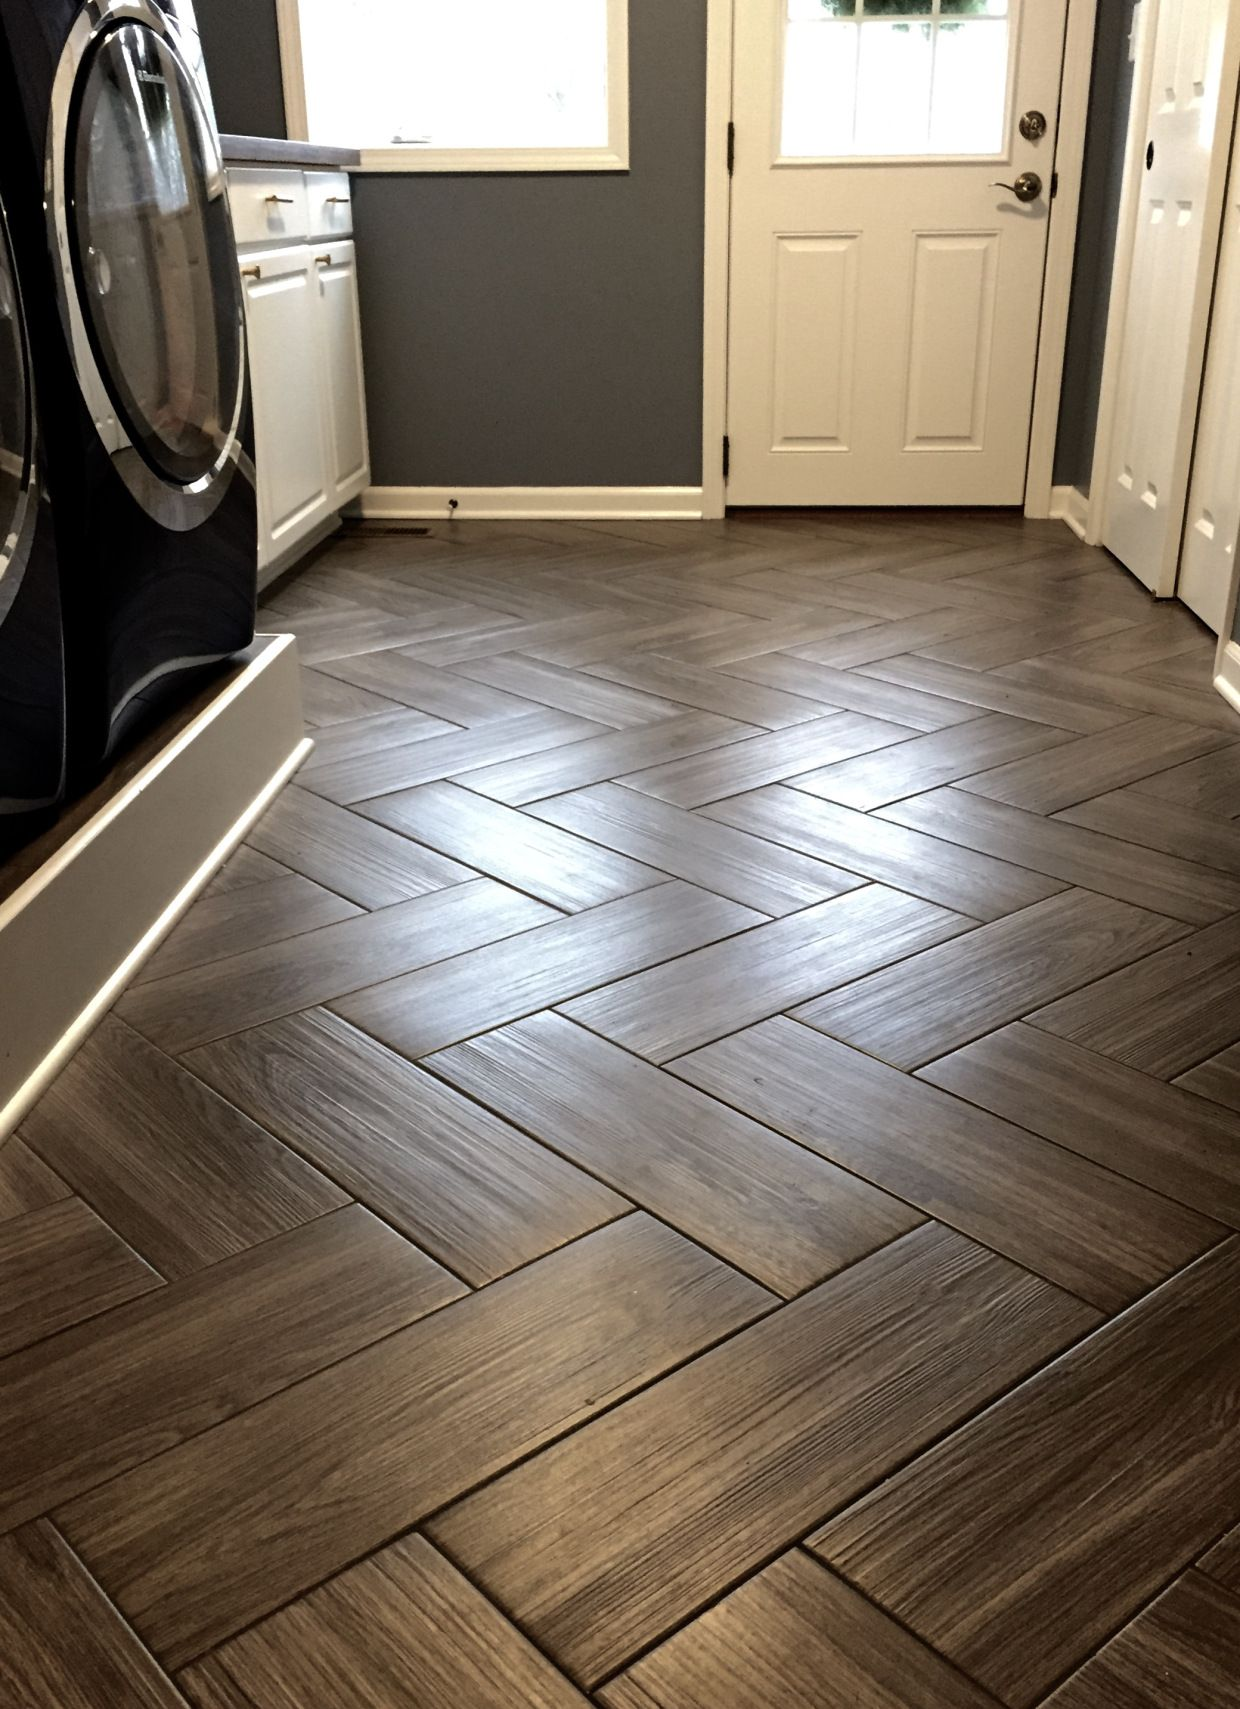 Gray wood grain tile in herringbone pattern